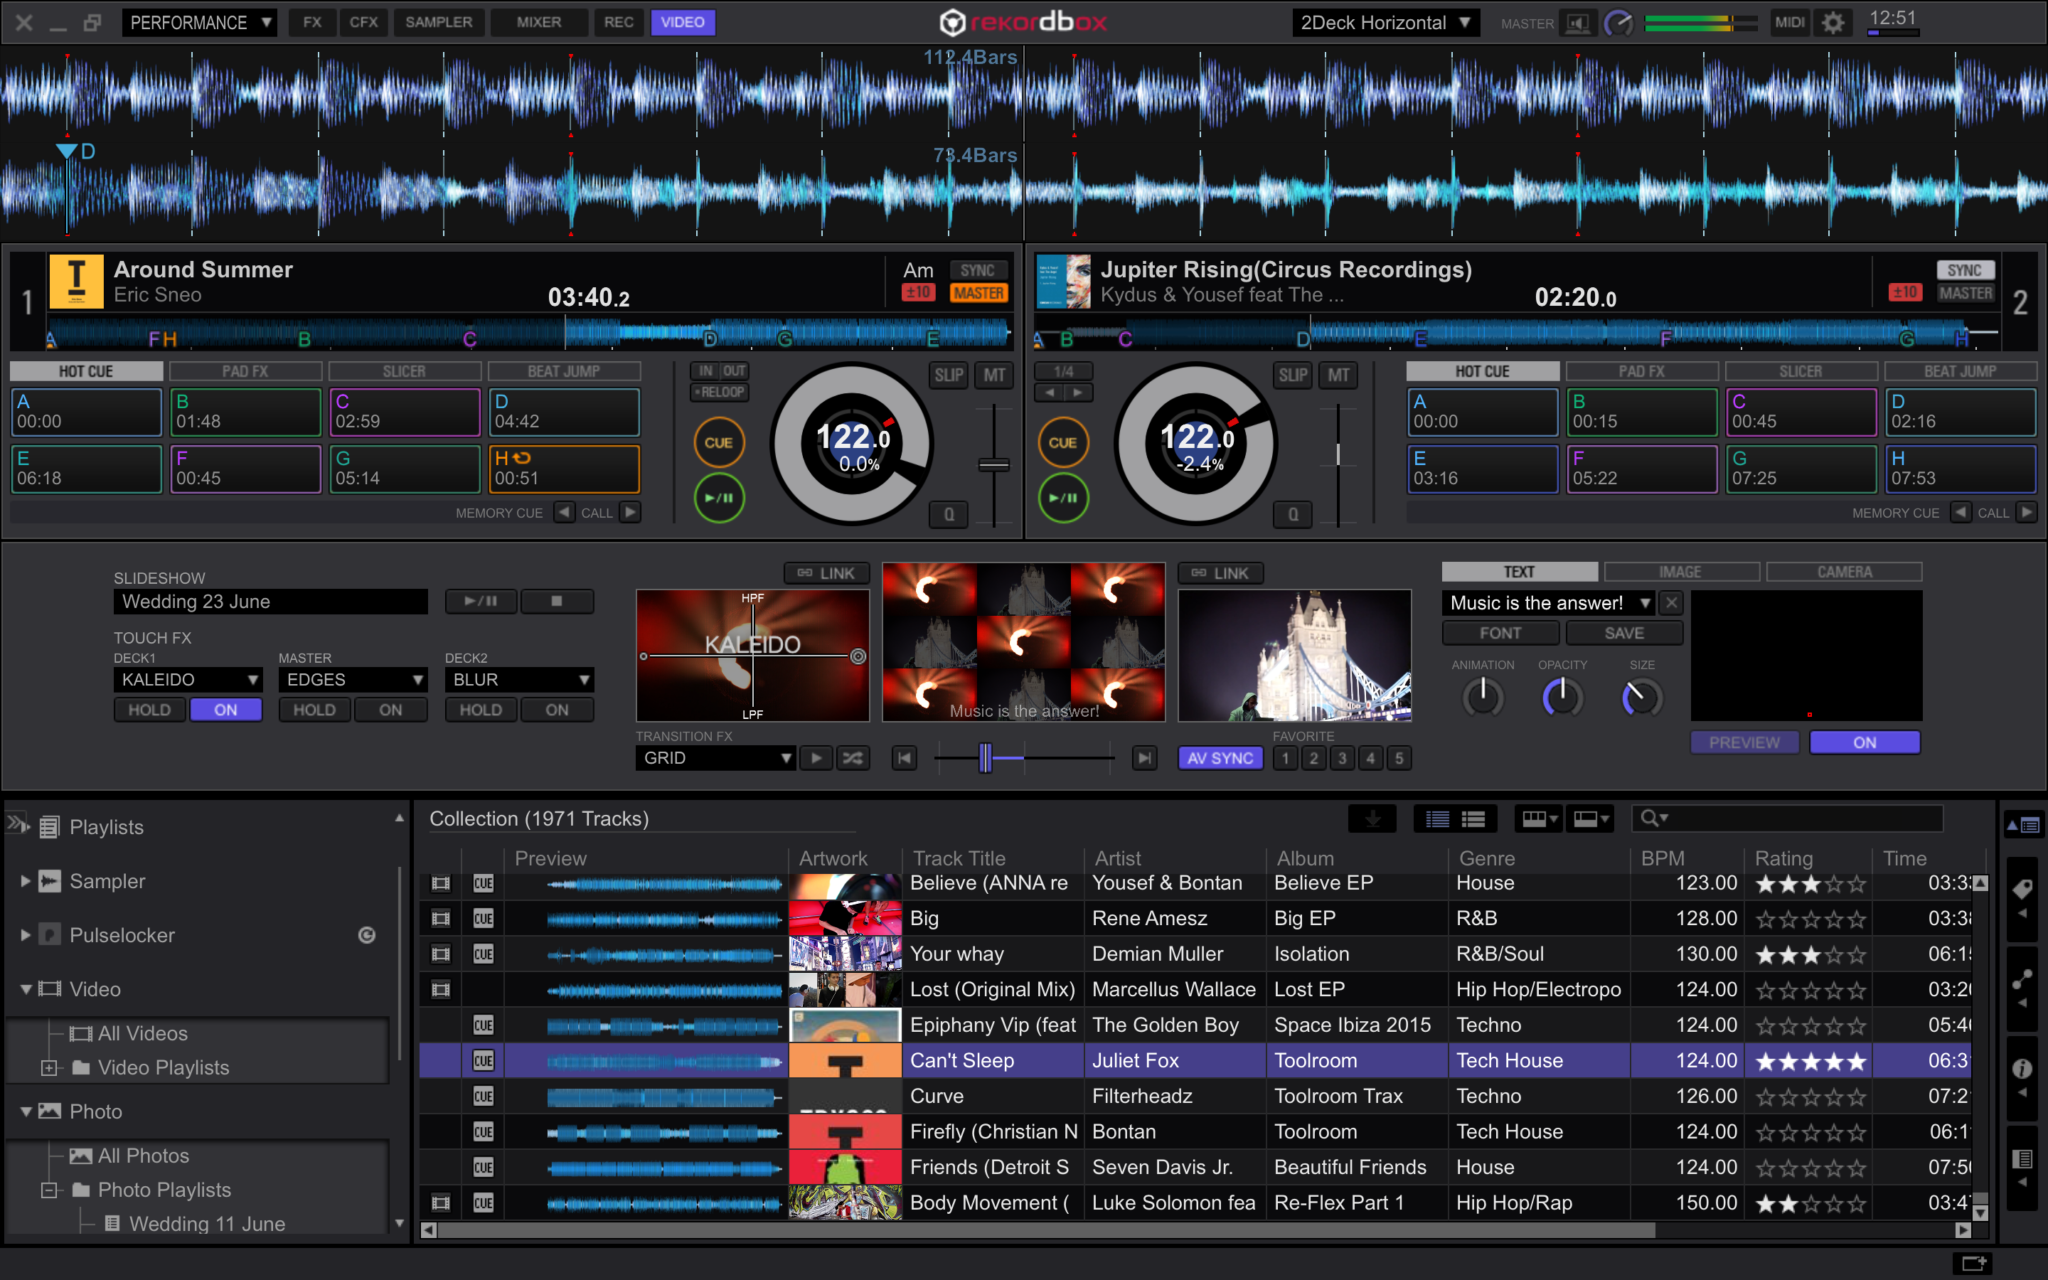 DDJ-RZX: Rekordbox DJ Video Controller - DJ TechTools